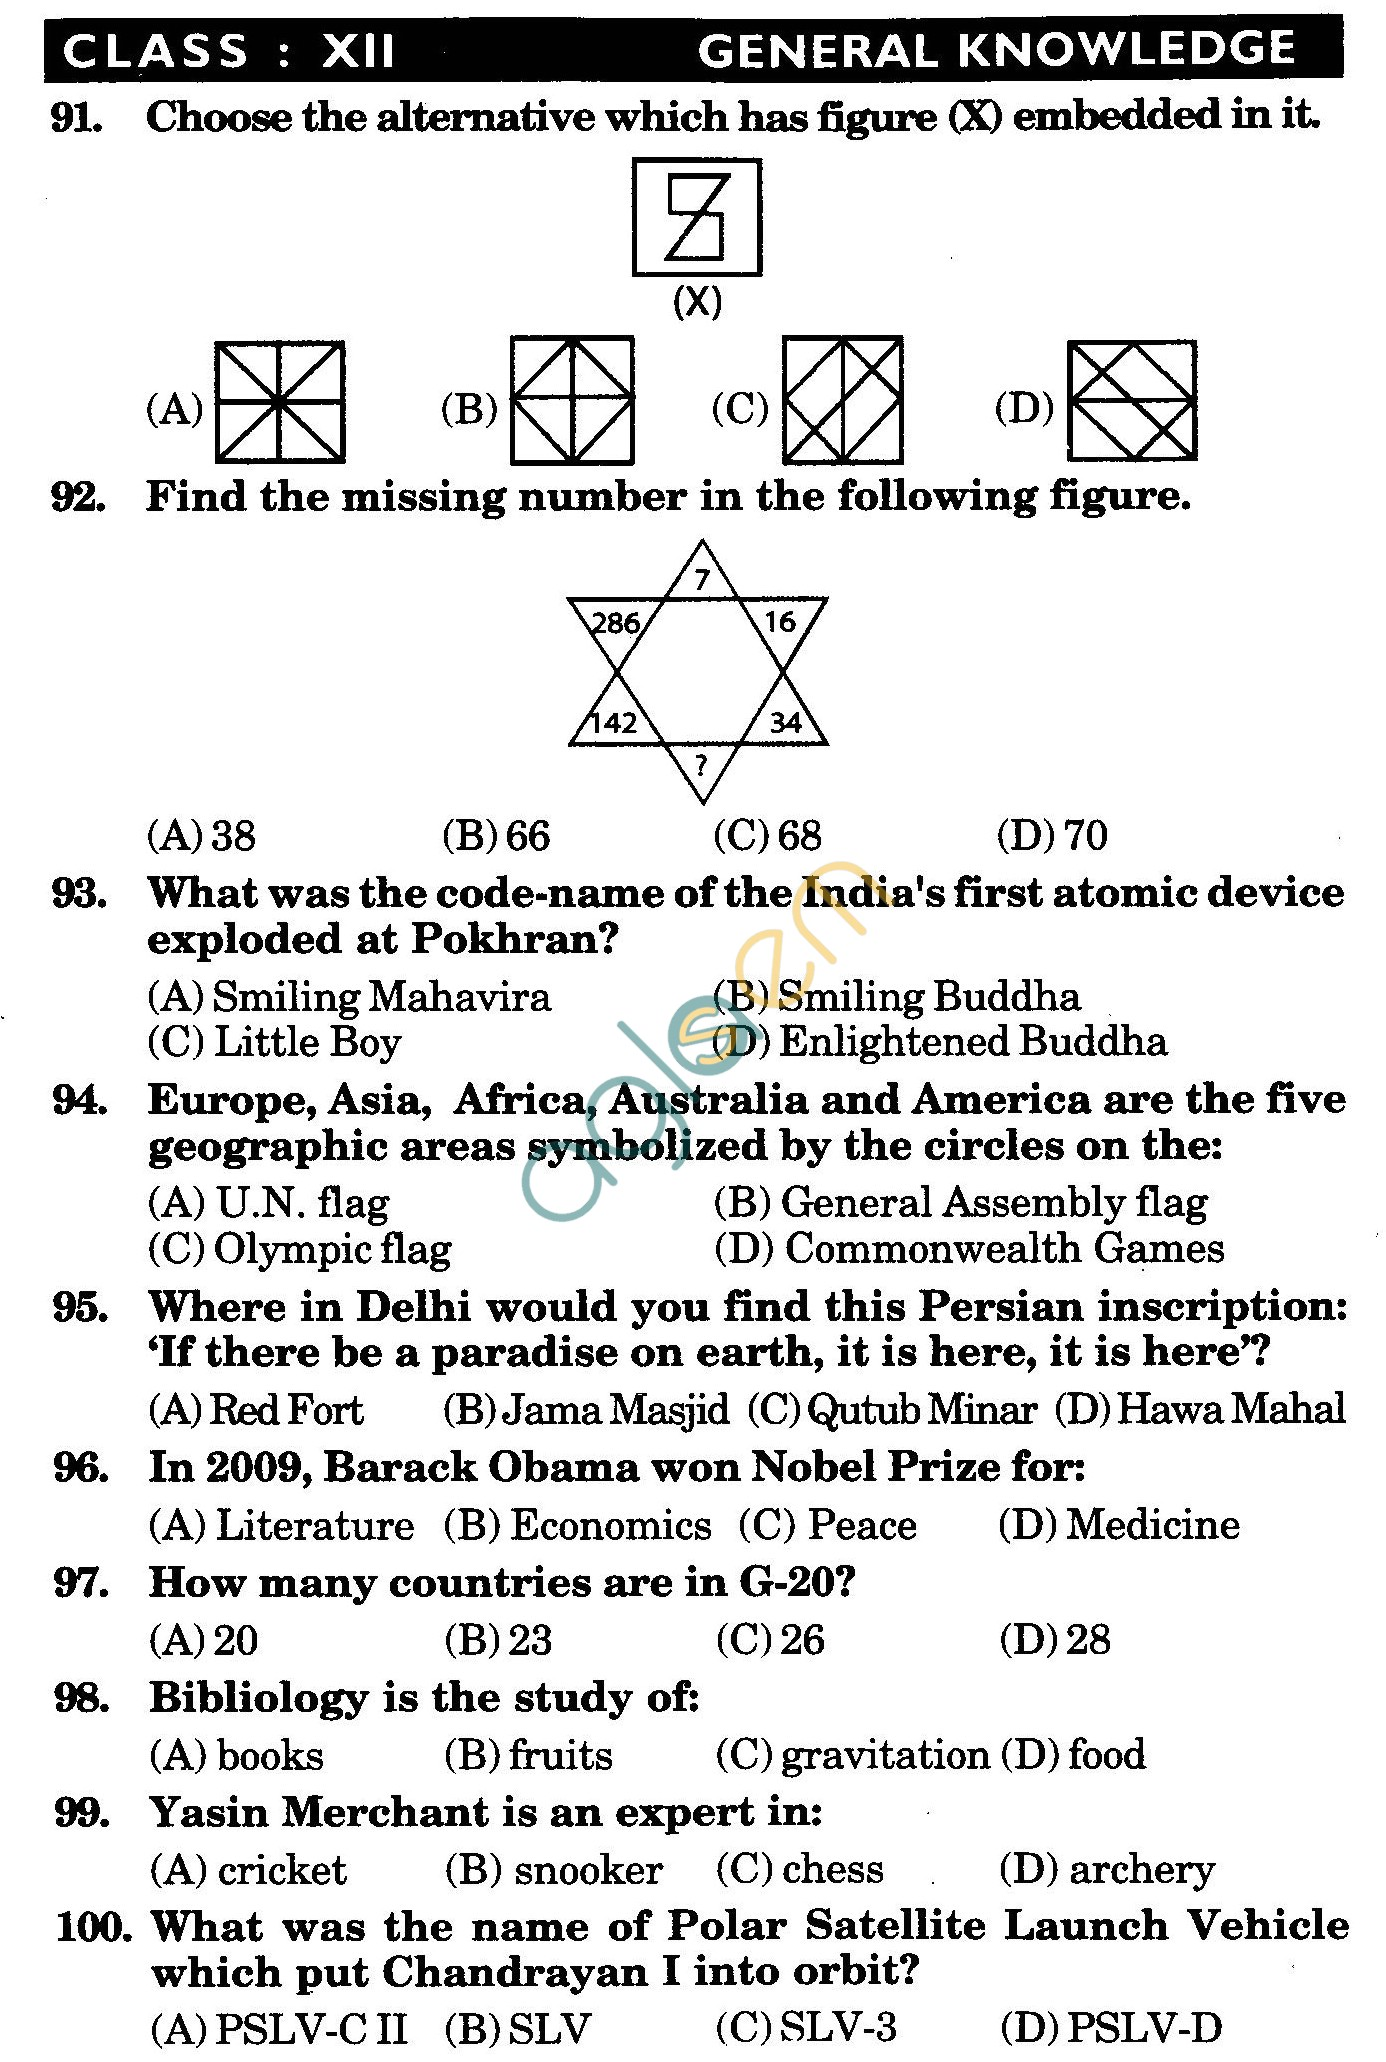 NSTSE 2010 Class XII PCM Question Paper with Answers - General Knowledge